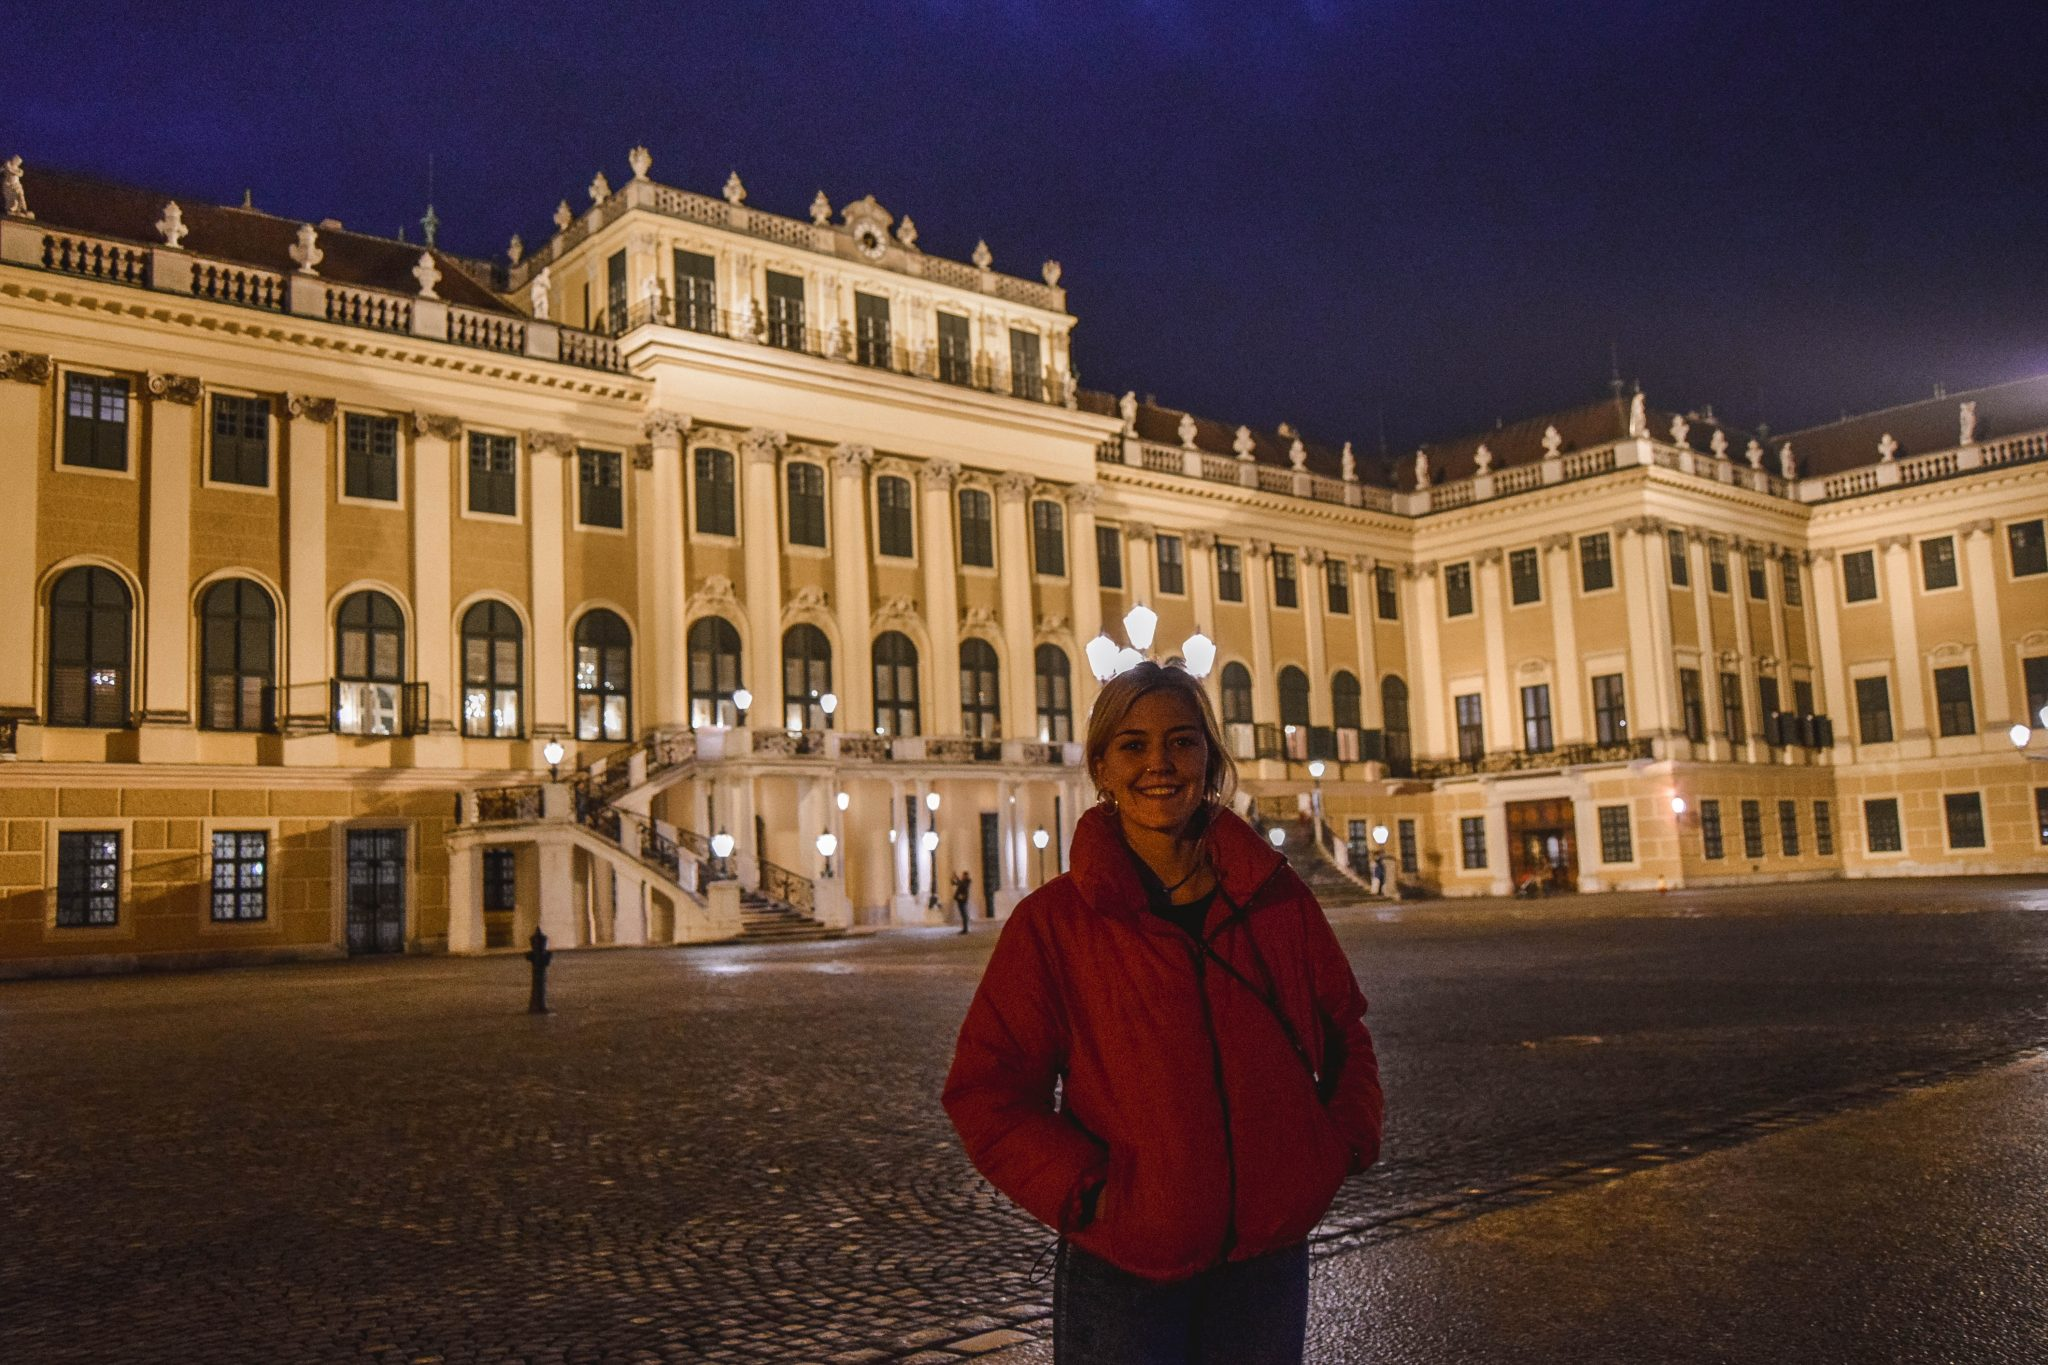 Wanderers & Warriors - Charlie & Lauren UK Travel Couple - Schönbrunn Palace Vienna In A Day - Things To Do In Vienna Itinerary 3 Days In Vienna 3 Day Itinerary Vienna 2 Day Itinerary